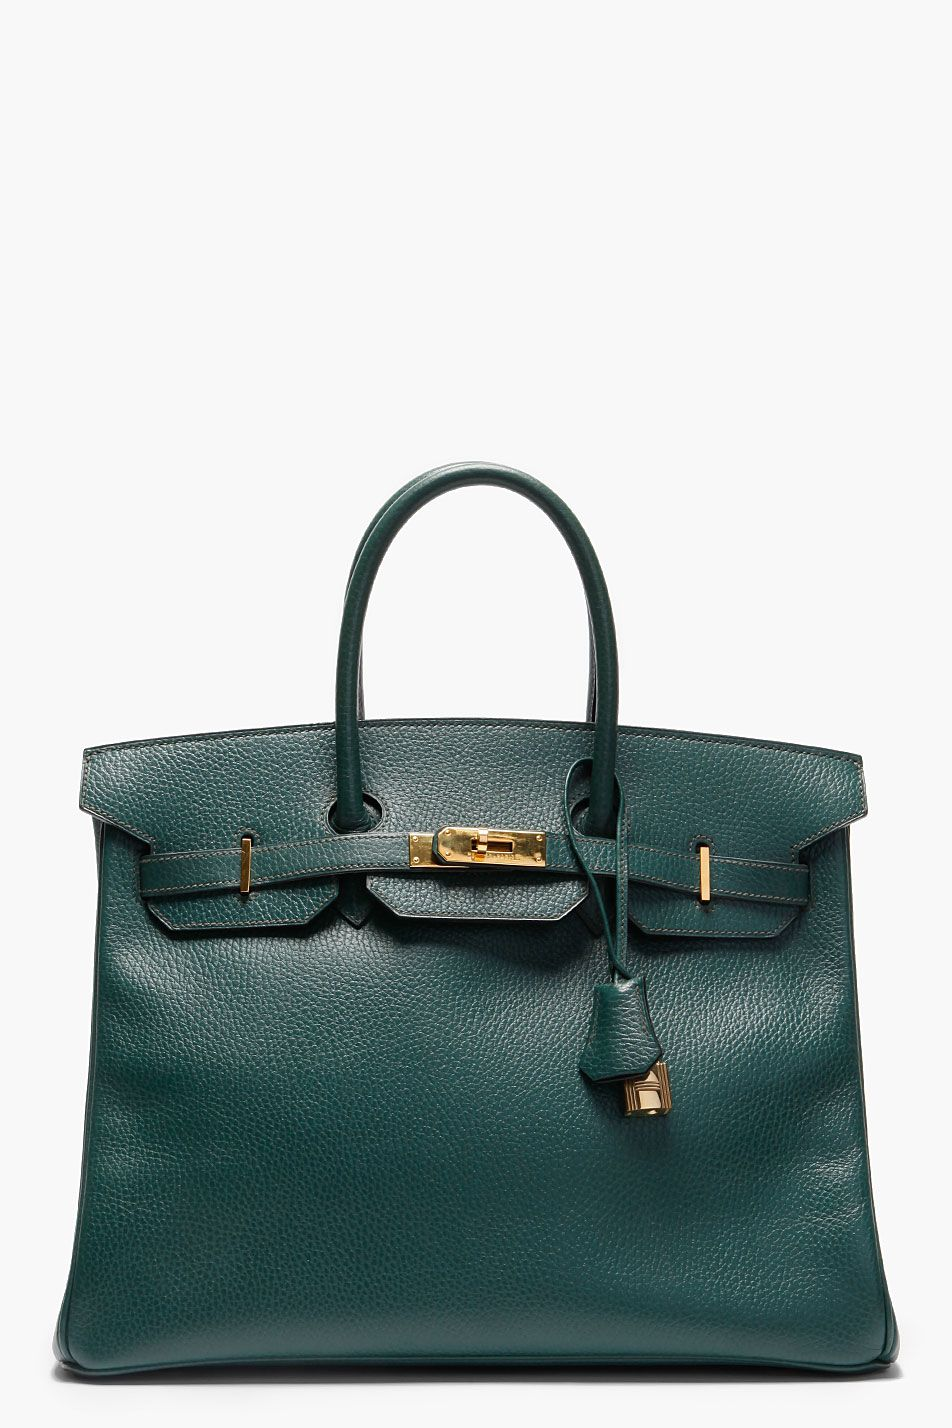 HERMES VINTAGE Dark Green Courchevel Leather Birkin Tote | Fashion ...